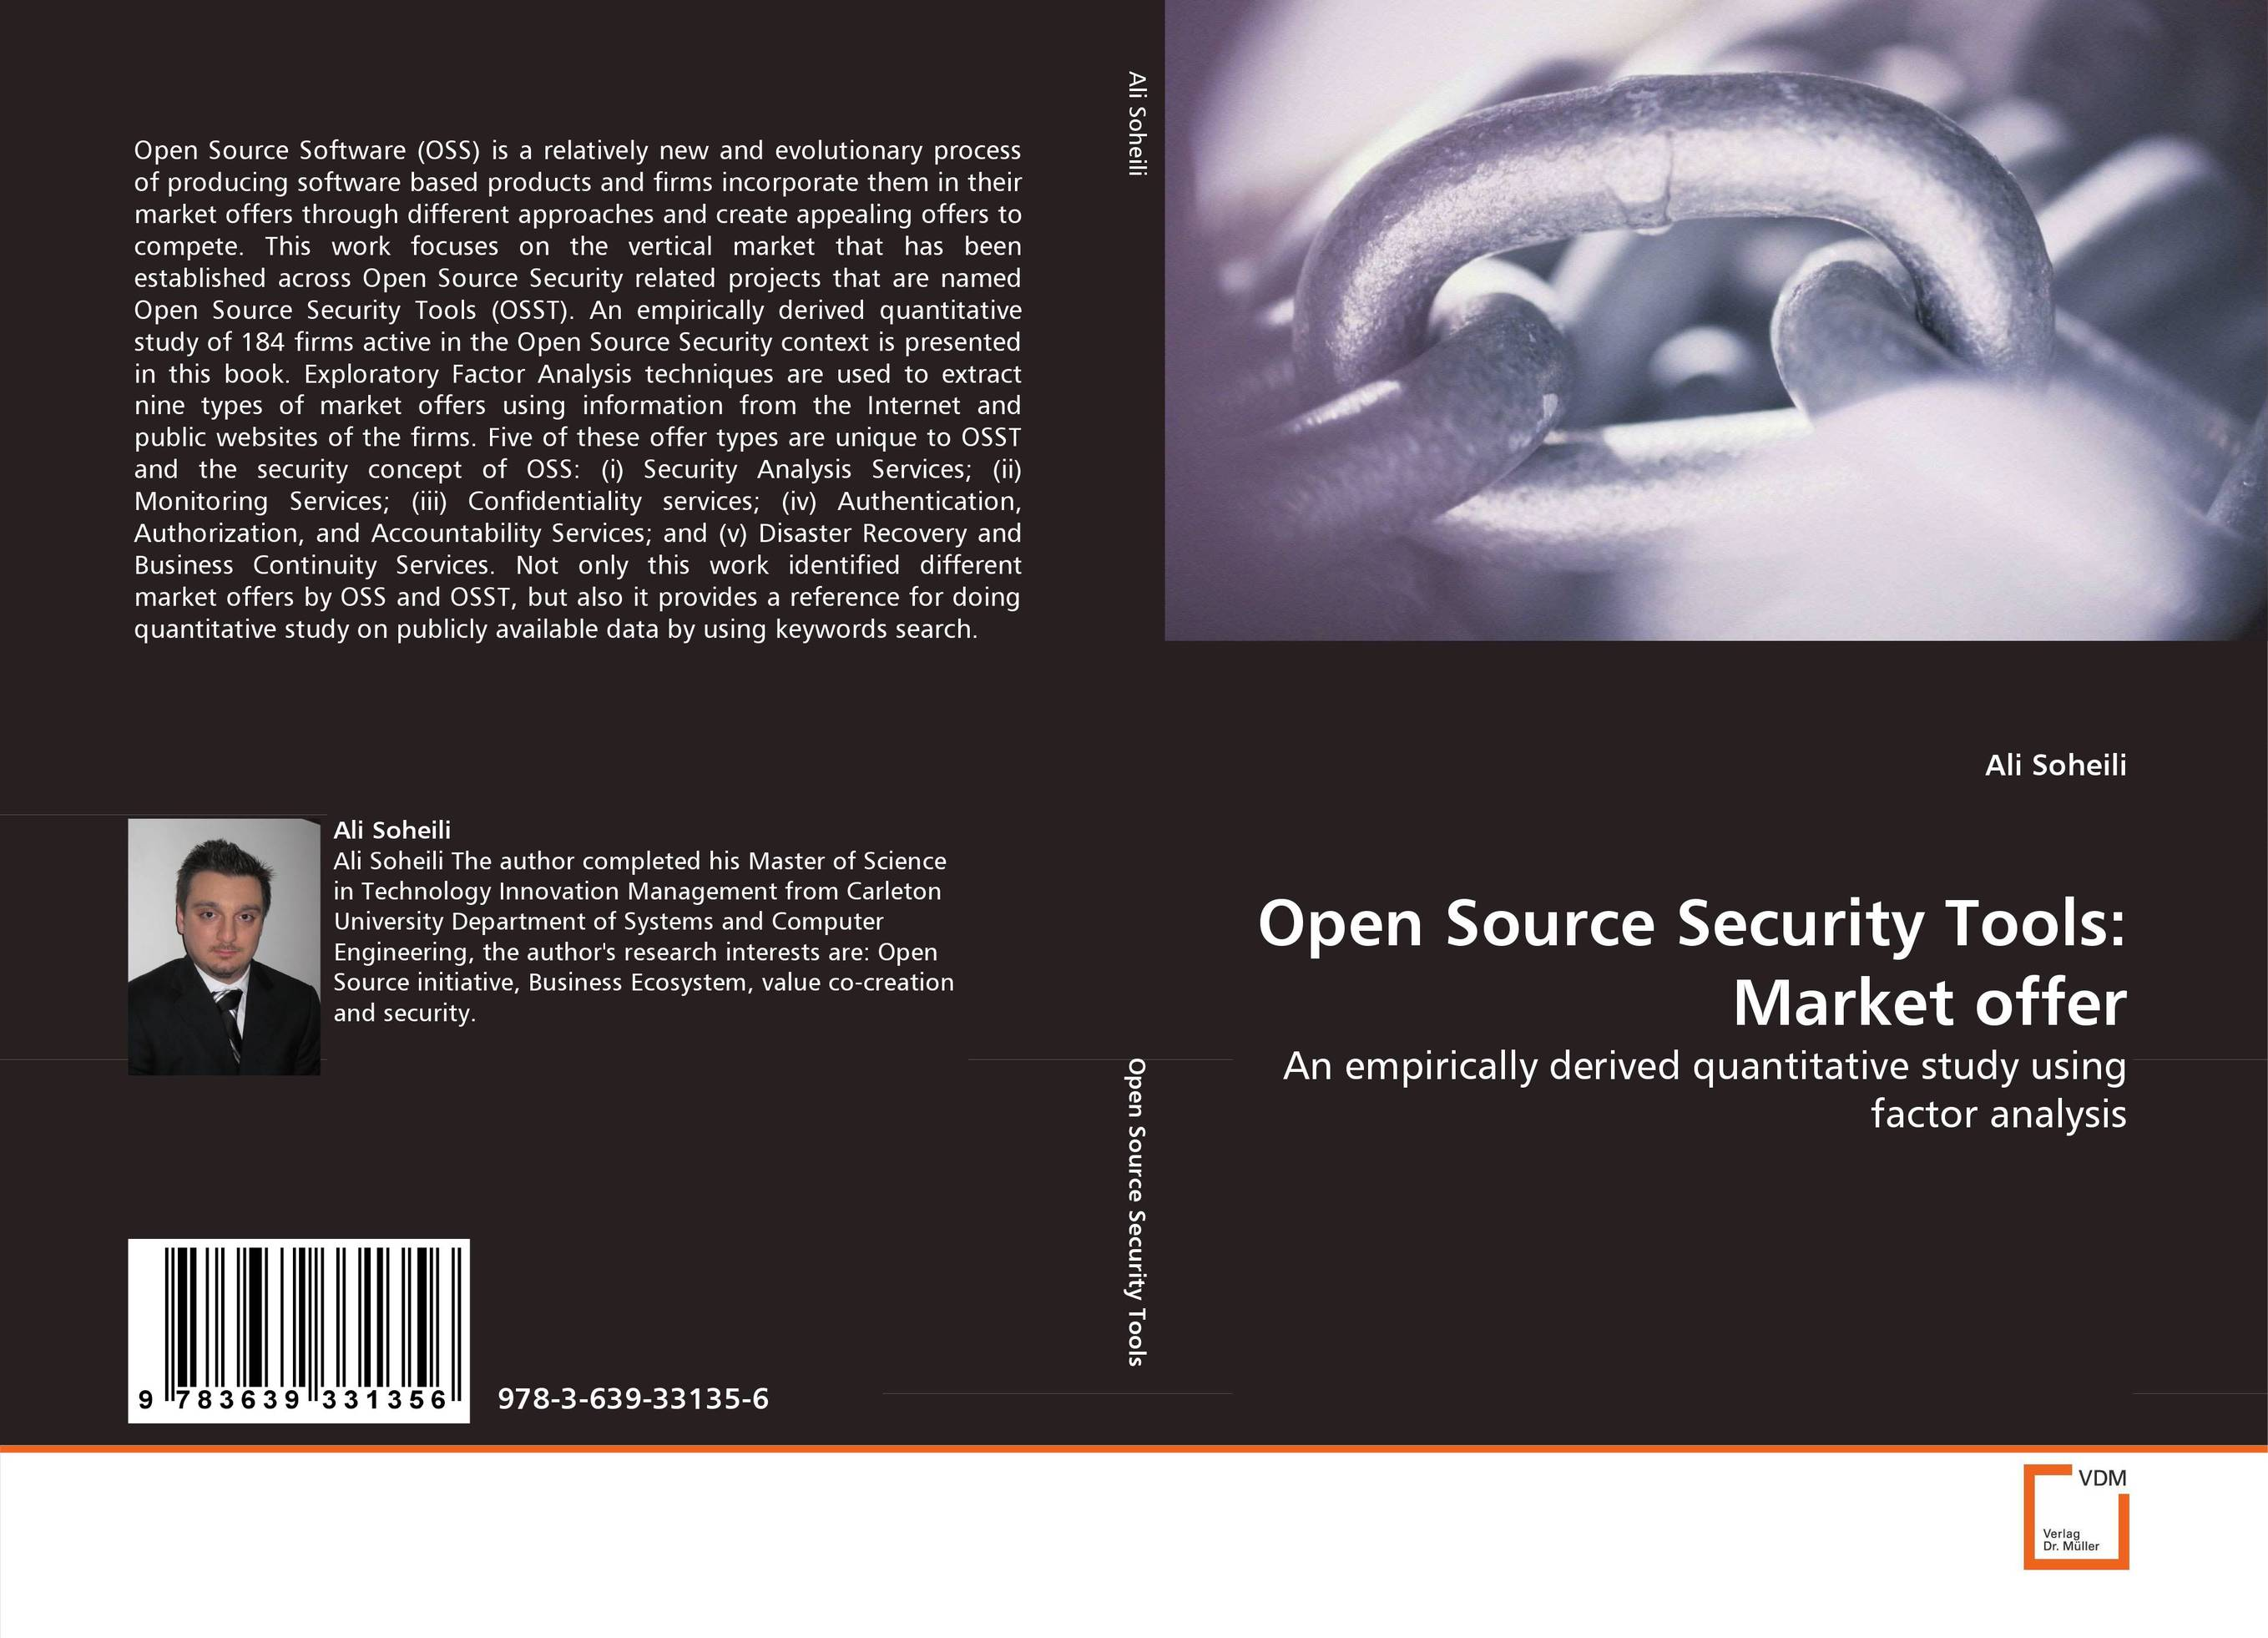 Open Source Security Tools: Market offer analyzing the usage of open source products for soa